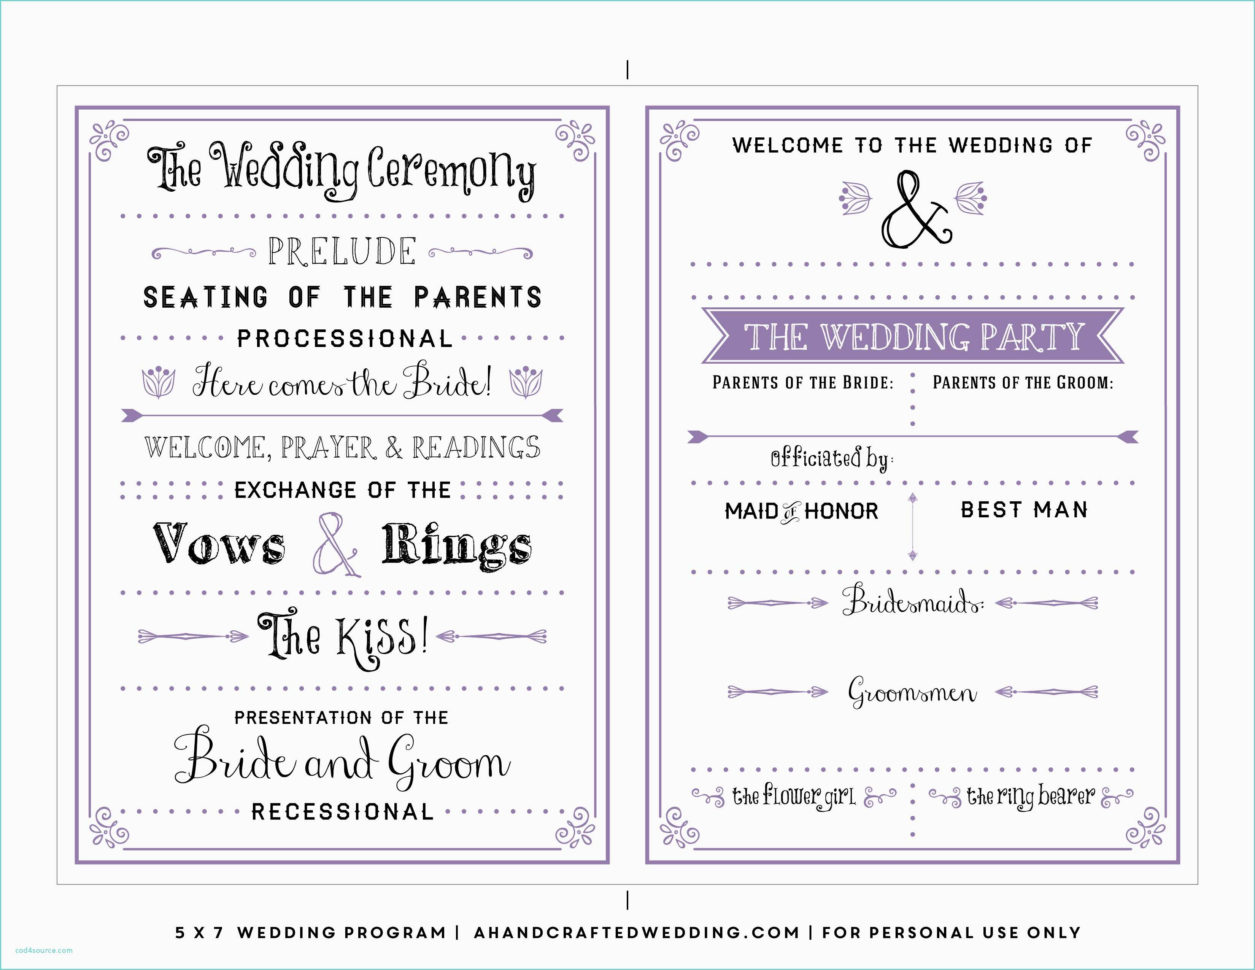 Wedding Budget Excel Spreadsheet Uk For Full Size Of Wedding Budget Spreadsheet The Knot Reddit With